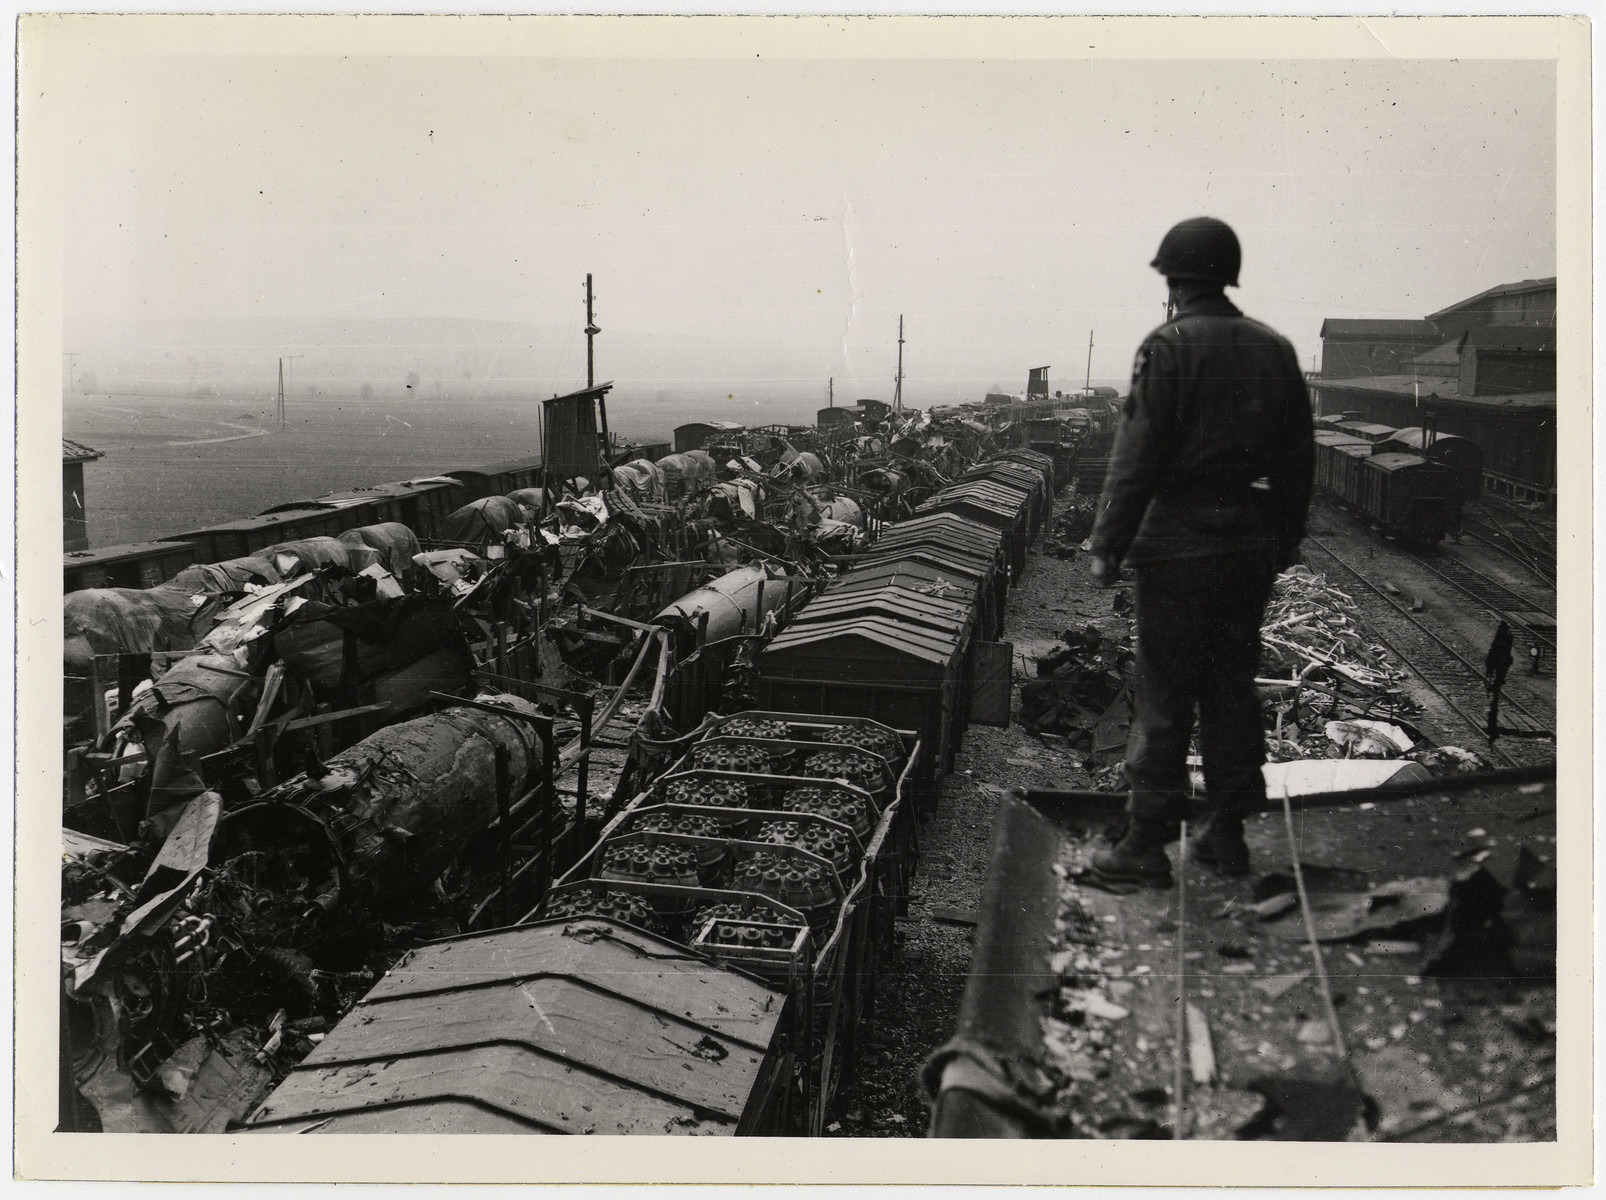 """An American soldier inspects rail cars filled with wrecked V-2s which were brought from the underground factory to nearby Kleinbodugen. Before evacuating  in the path of the First U.S Army advance, Nazi officials removed and destroyed as machinery as possible.  [original caption]  Original caption reads: """"Nazi weapons of death made by dying slaves is the grim story of Nordhausen , Reich center for V-bomb production which was captured by troops of the First U. S. Army April 10, 1945. Hundreds of dead and dying lay in the same beds in a nearby slave camp where, according to the liberated, 9,000 lost their lives in 1944. The American officer in charge immediately ordered the leading citizens of Nordhausen to bury the rotting and skeleton-like dead, choosing a burial site on a hillside overlooking the V-bomb factory where the slave workers had been already murdered. The factory, assembly plants for V-1 and V-2 weapons , was a series of deep underground tunnels. Three main tunnels were connected with 42 smaller ones. Until May, 1944, workers were never allowed outside. When the slaves, who labored  in 18-hour shifts, became too weak to work, they were loaded into box cars and never seen again."""""""